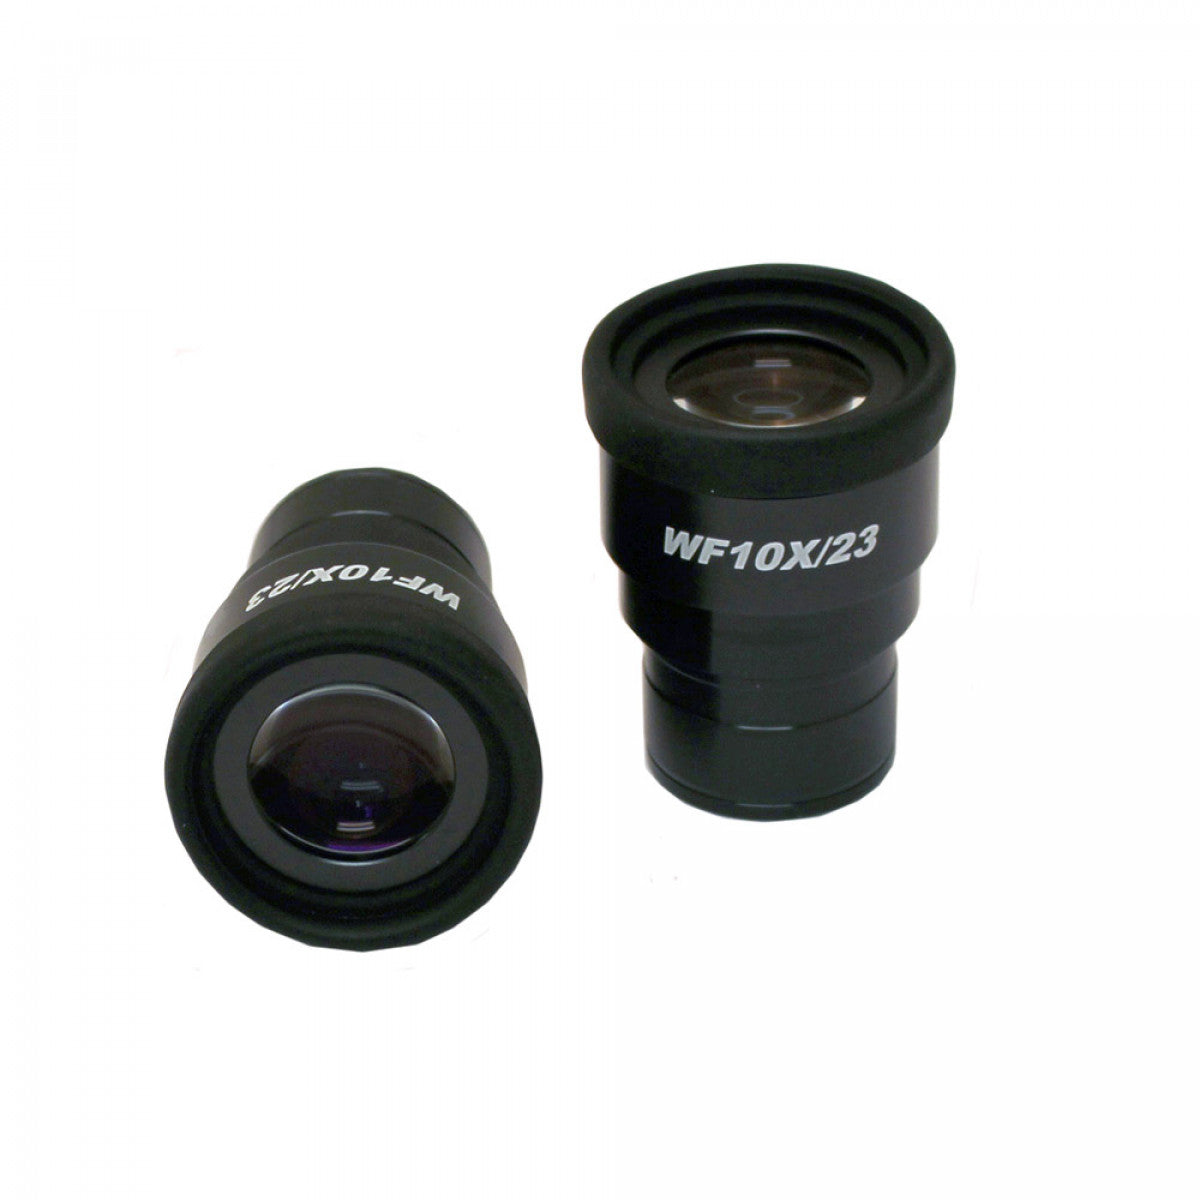 Eyepieces for Unitron Z650 Microscope Series